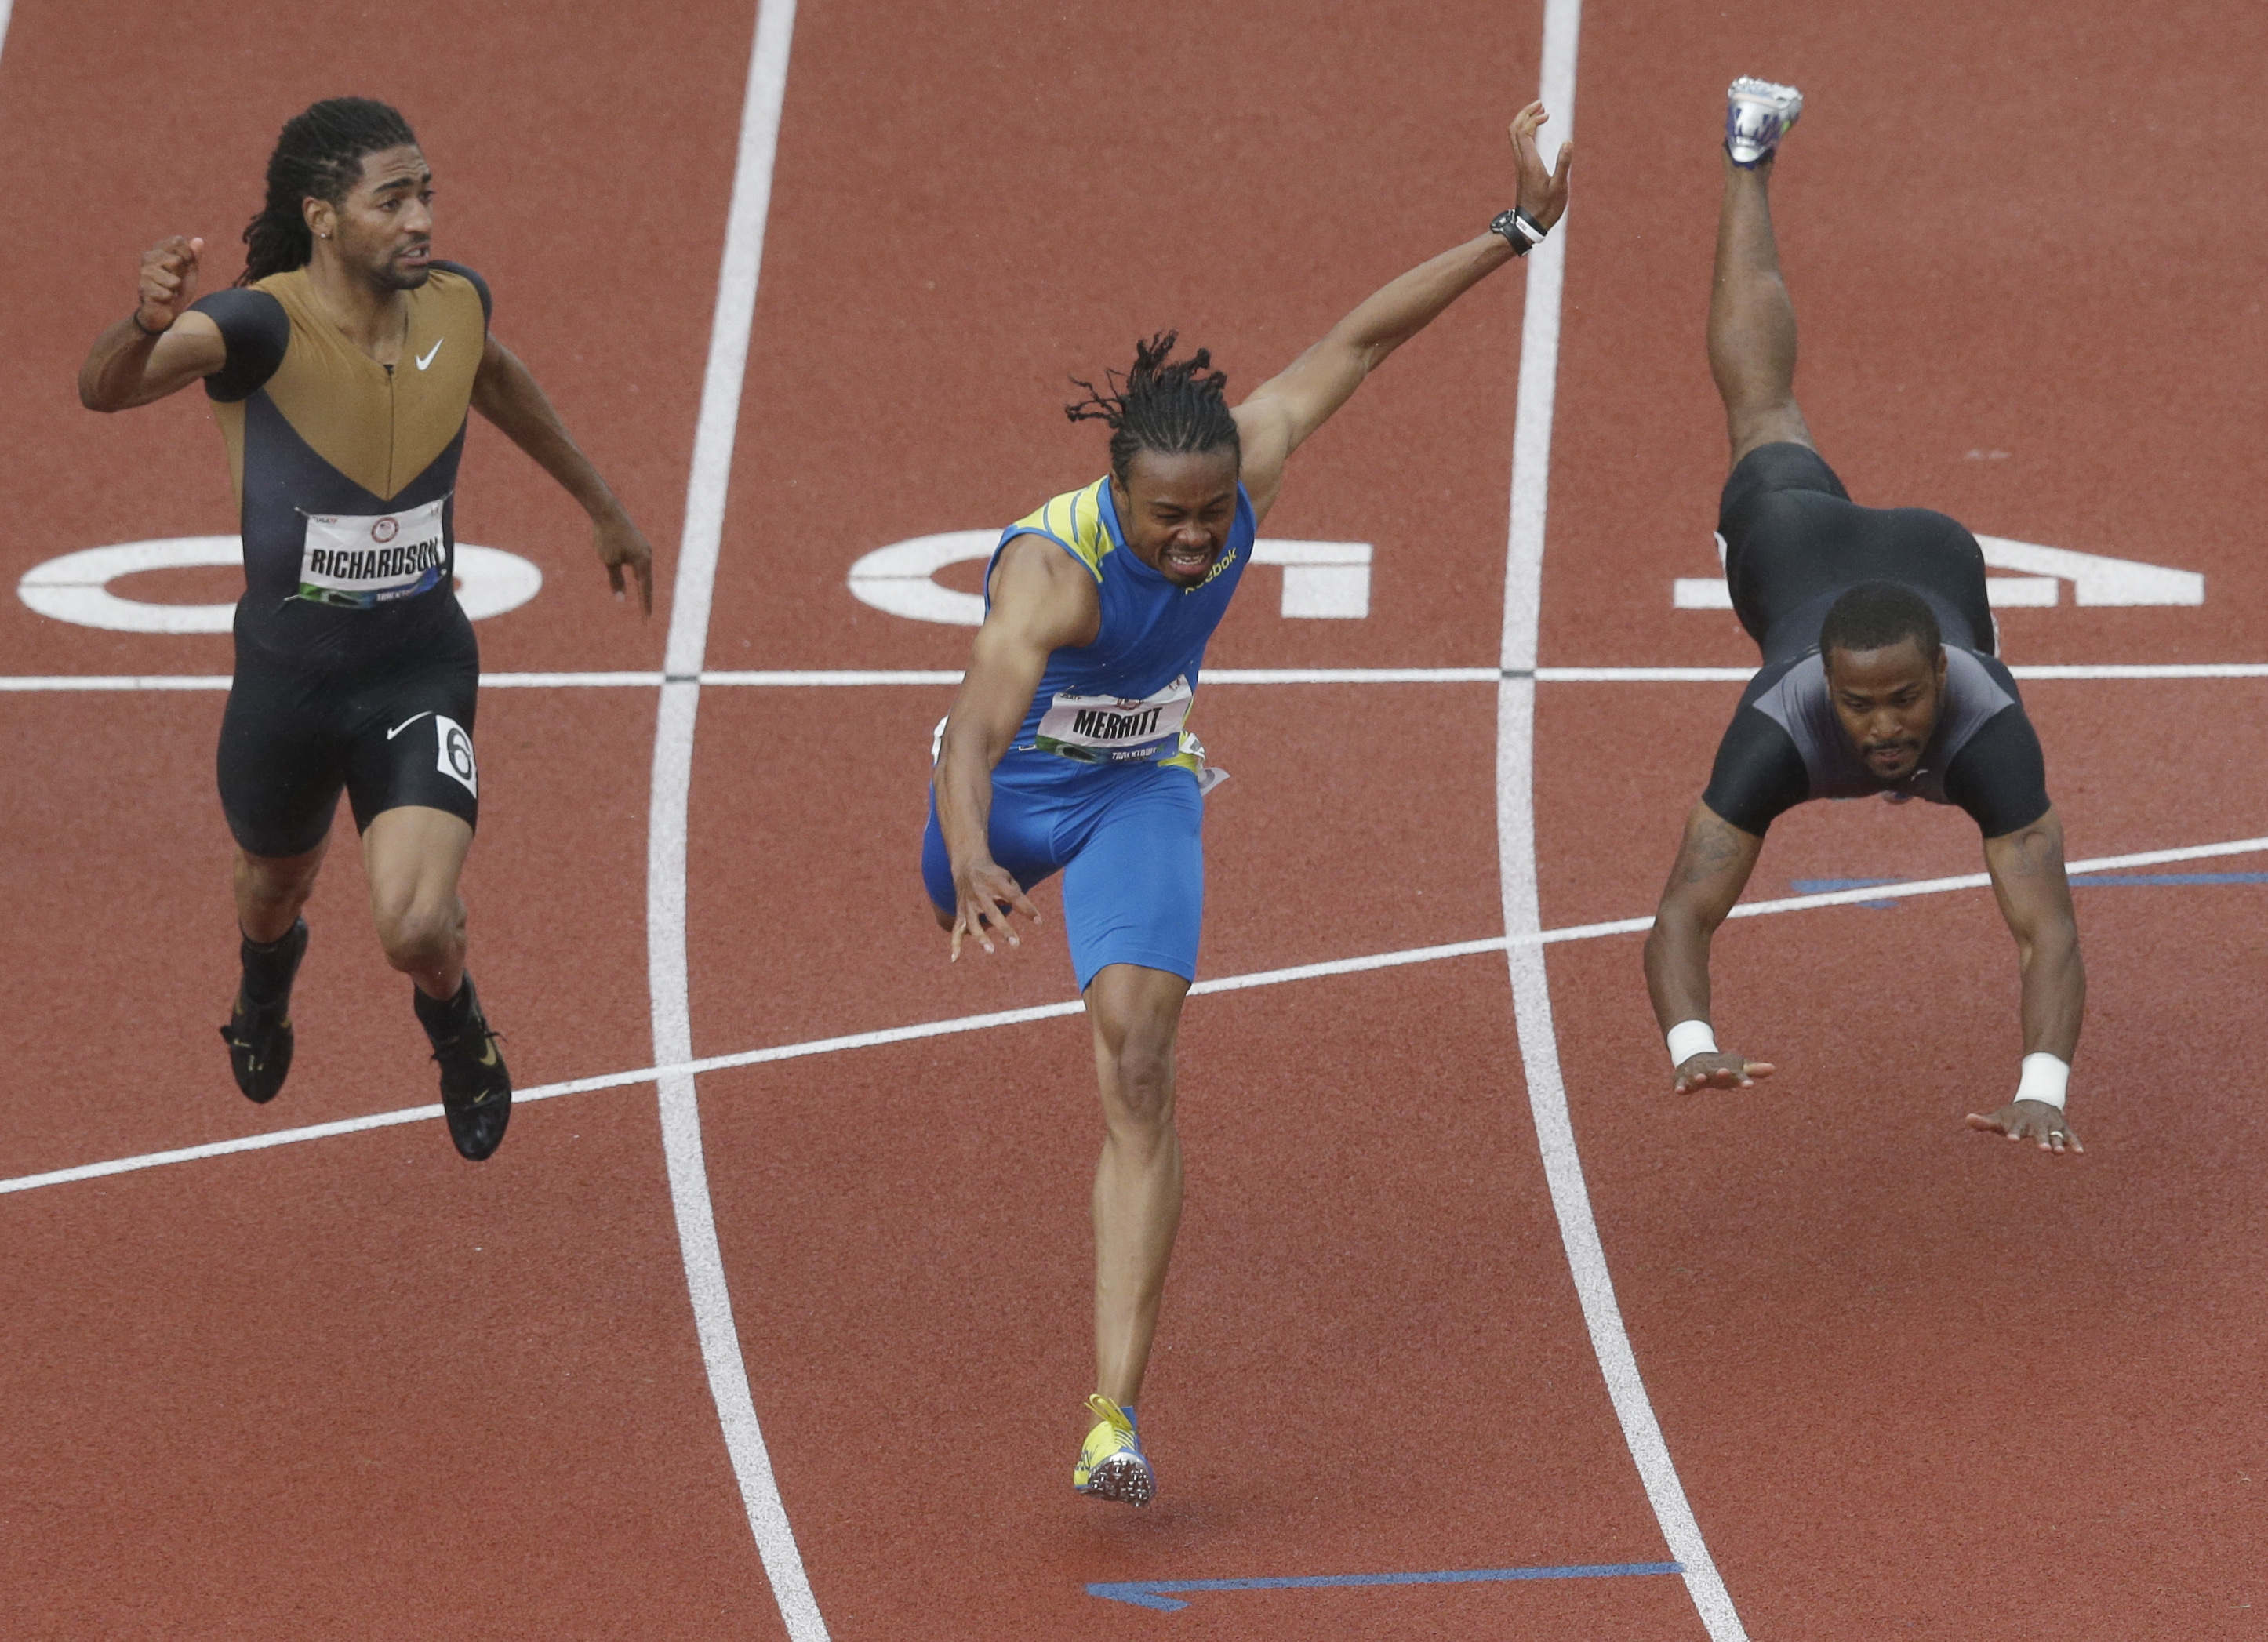 Jason Richardson and Aries Merritt lunge for the finish as Jeffrey Porter falls in the men's 110 meter hurdles at the U.S. Olympic Track and Field Trials Saturday, June 30, 2012, in Eugene, Ore. (AP Photo/Charlie Riedel)